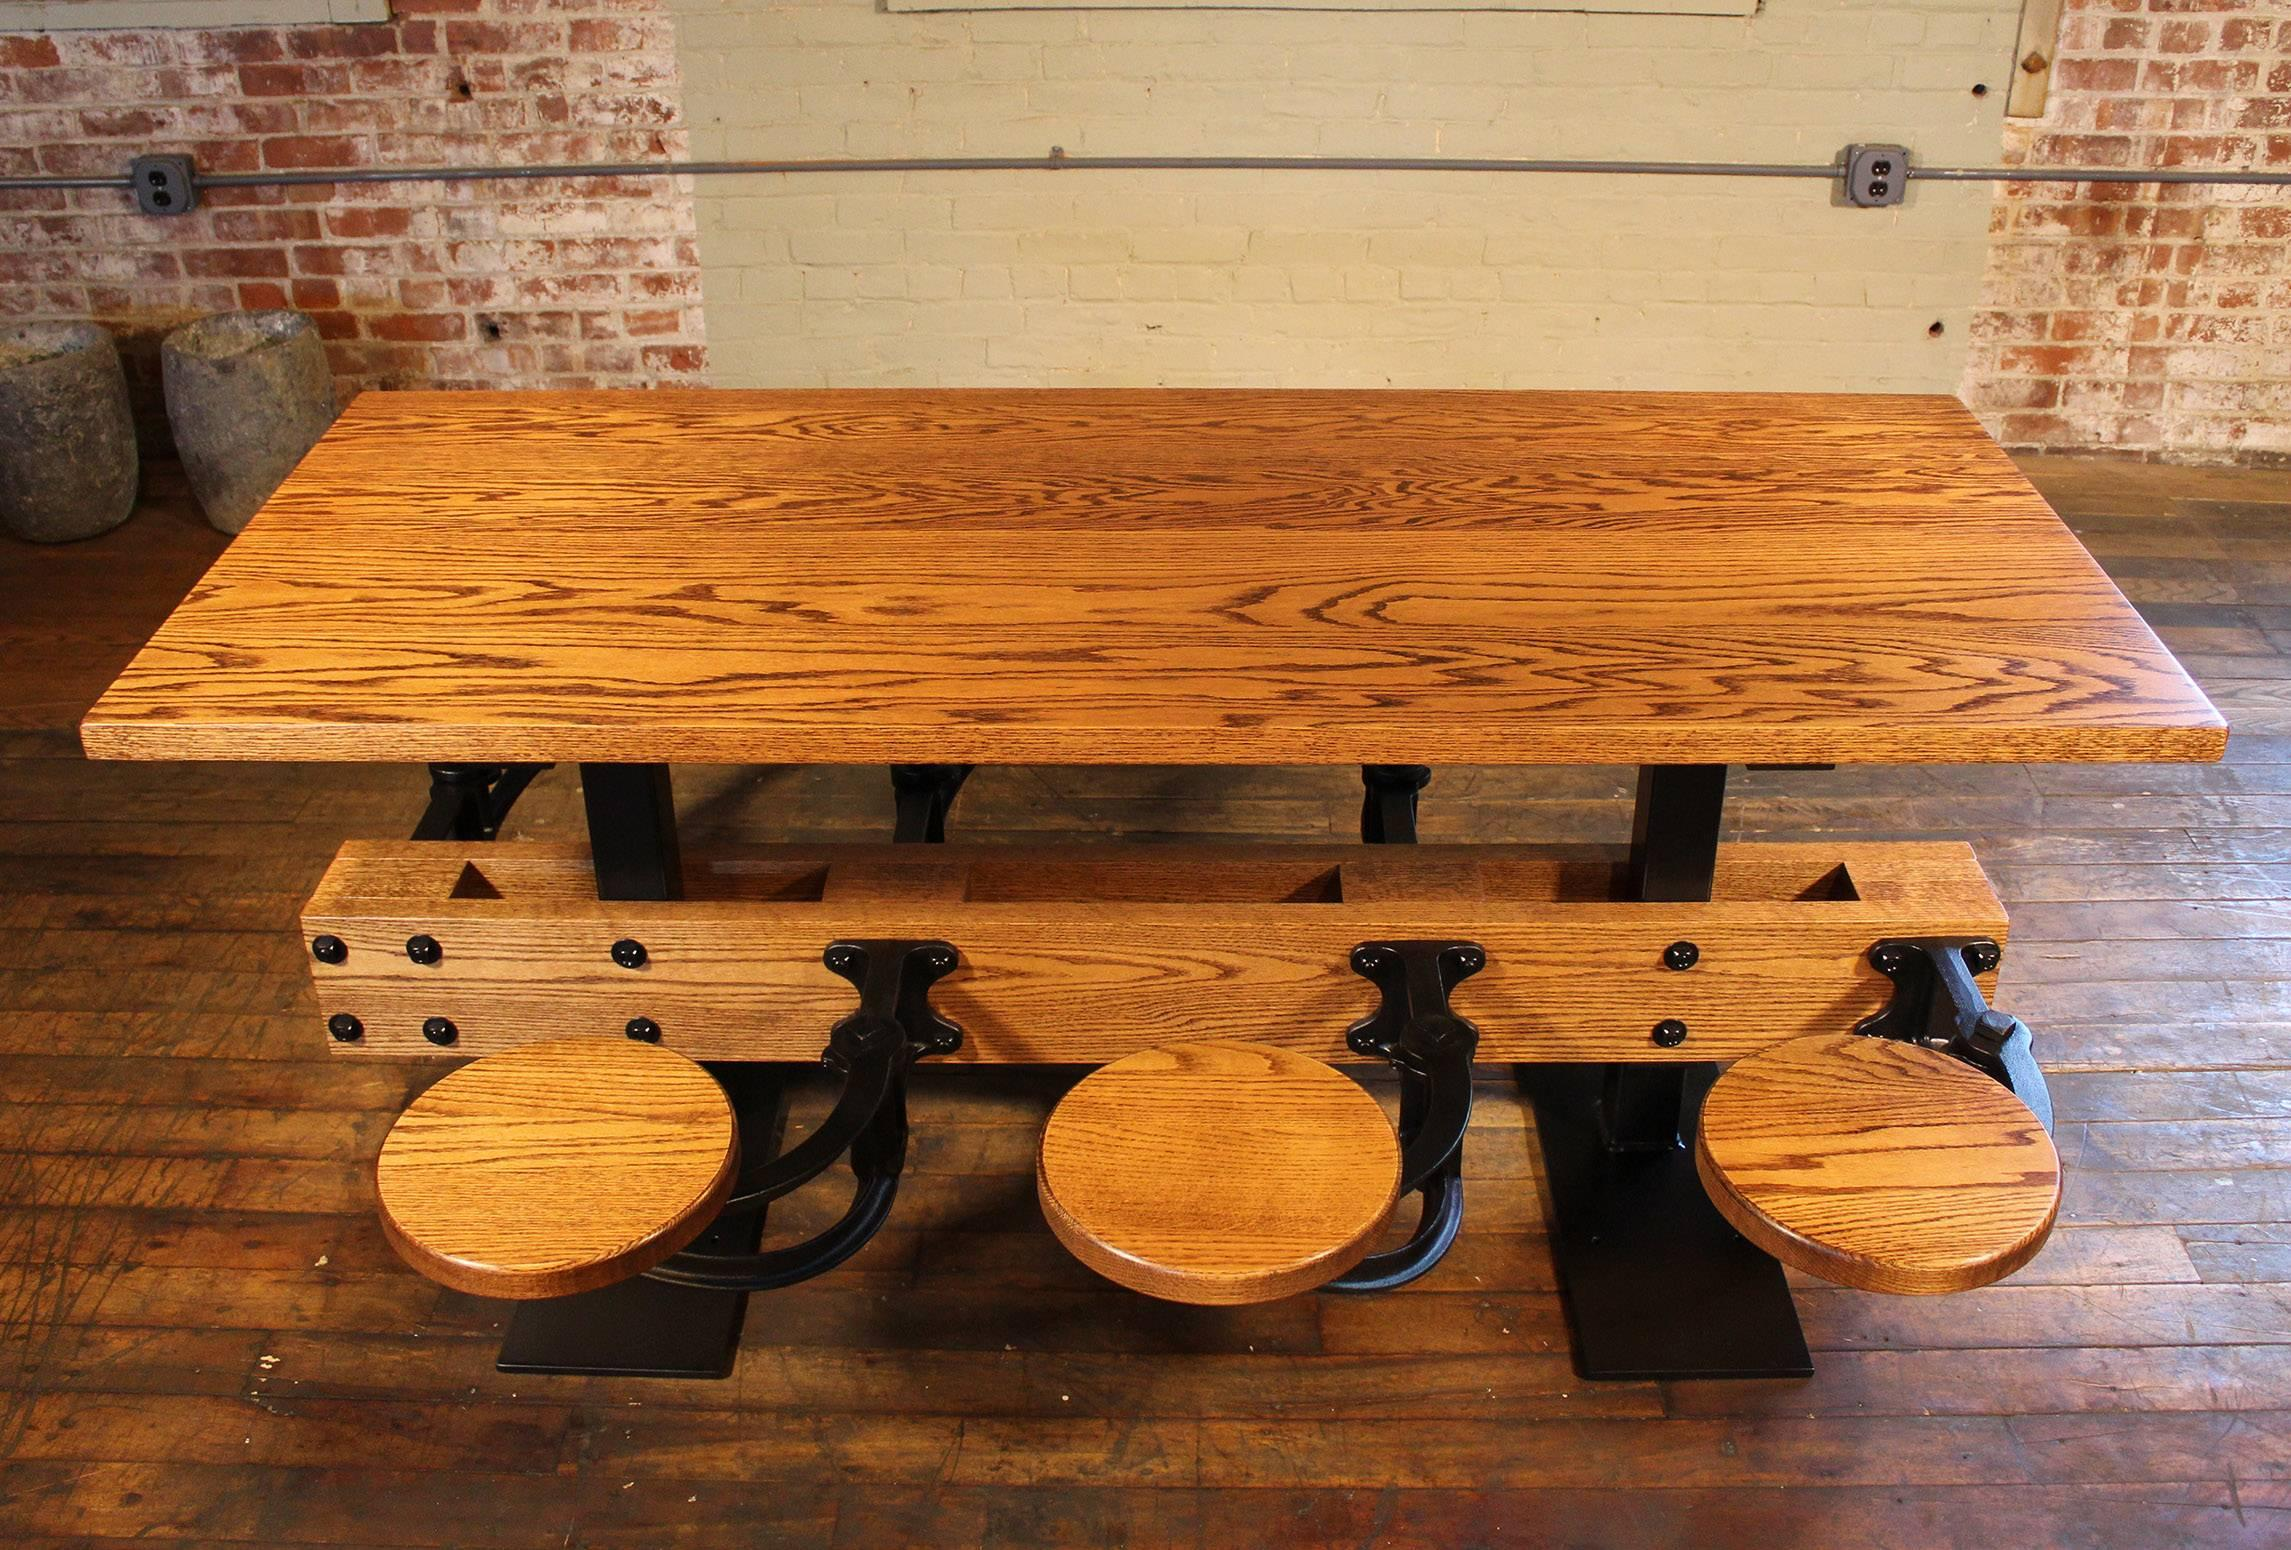 Oak Dining Table With Attached Swing Out Seats, Chairs, Cafe For Sale At  1stdibs